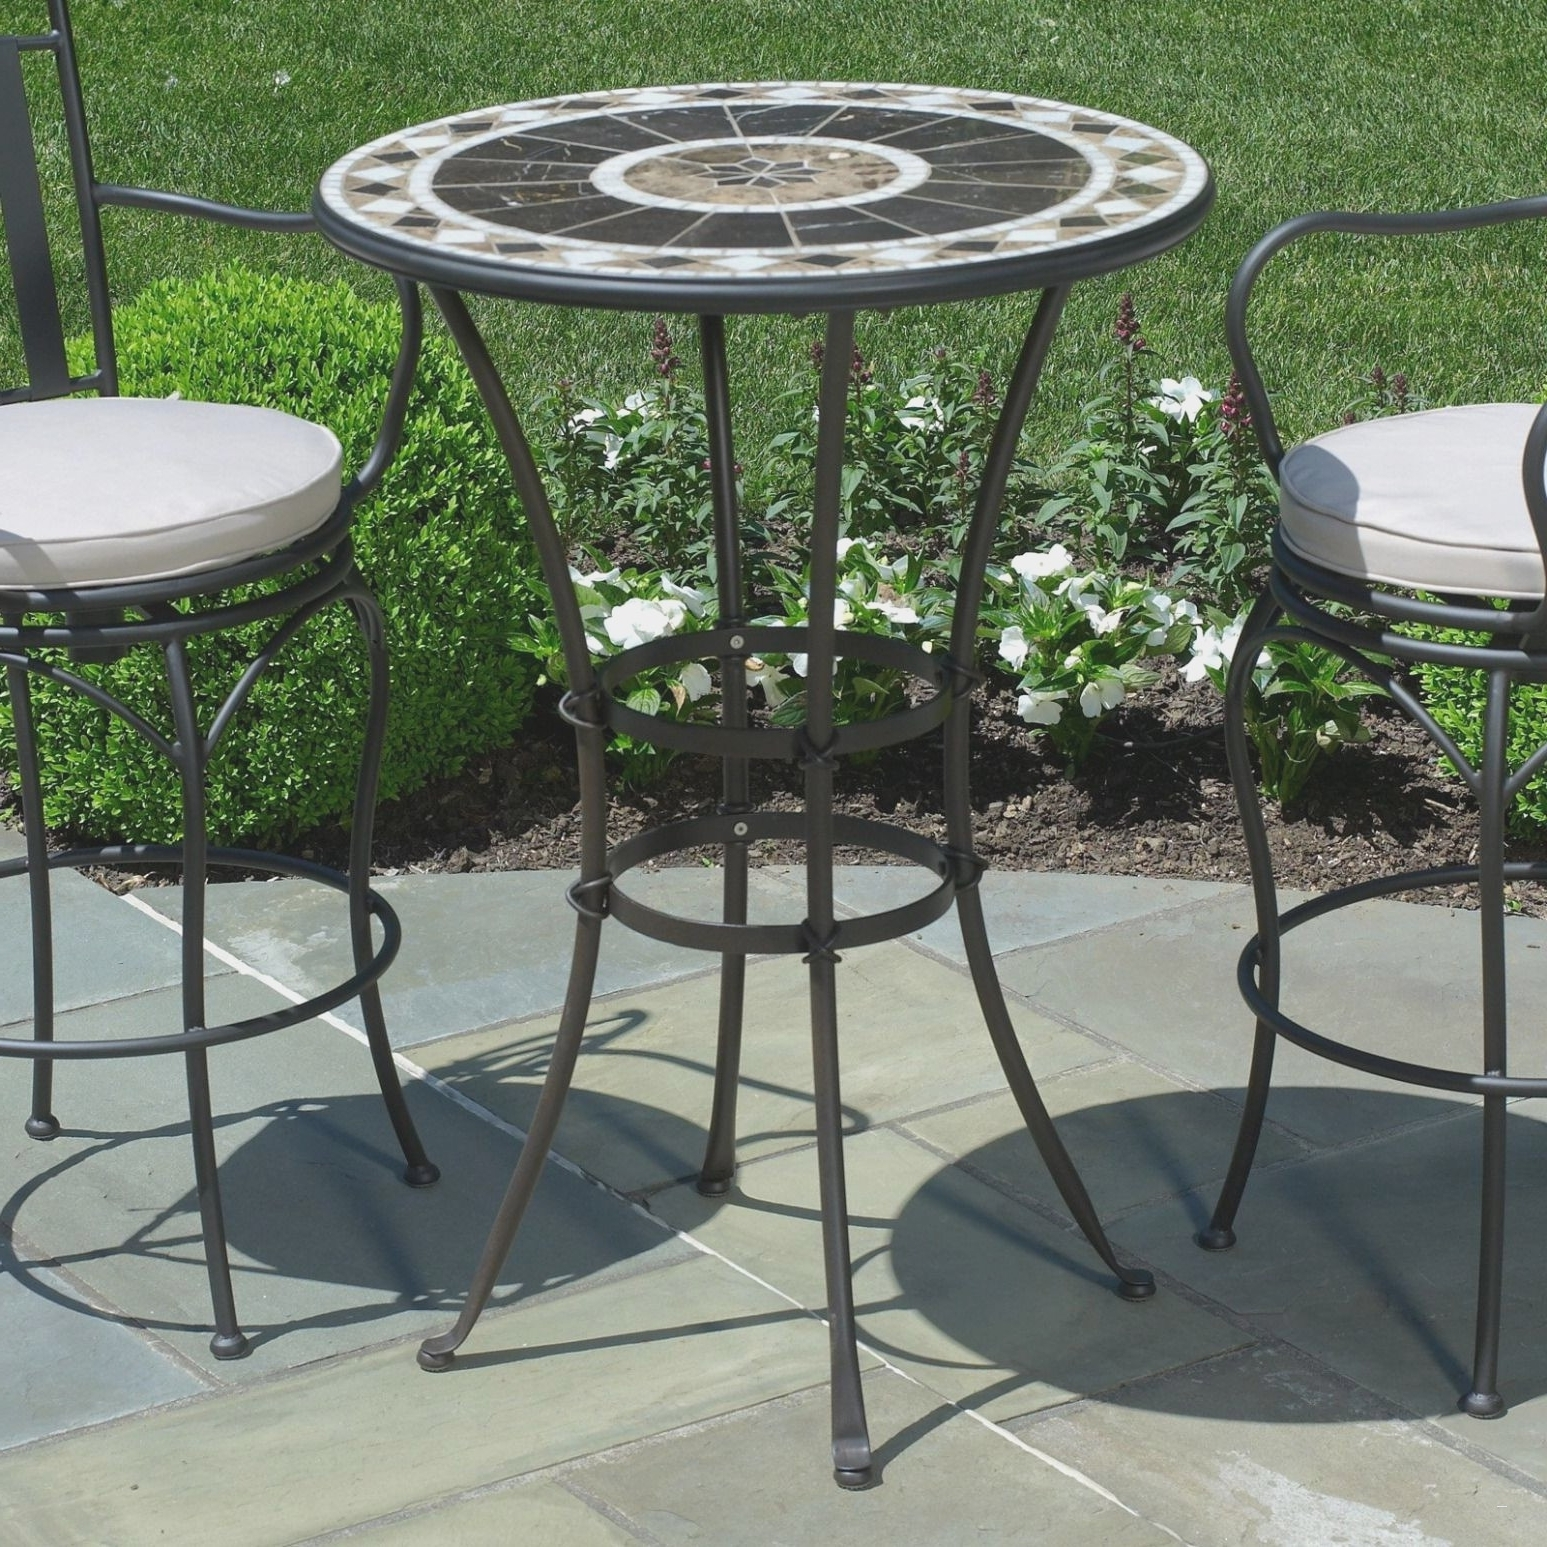 Patio Conversation Sets Under 200 For Fashionable Outdoor Furniture Bar Stools (View 11 of 20)